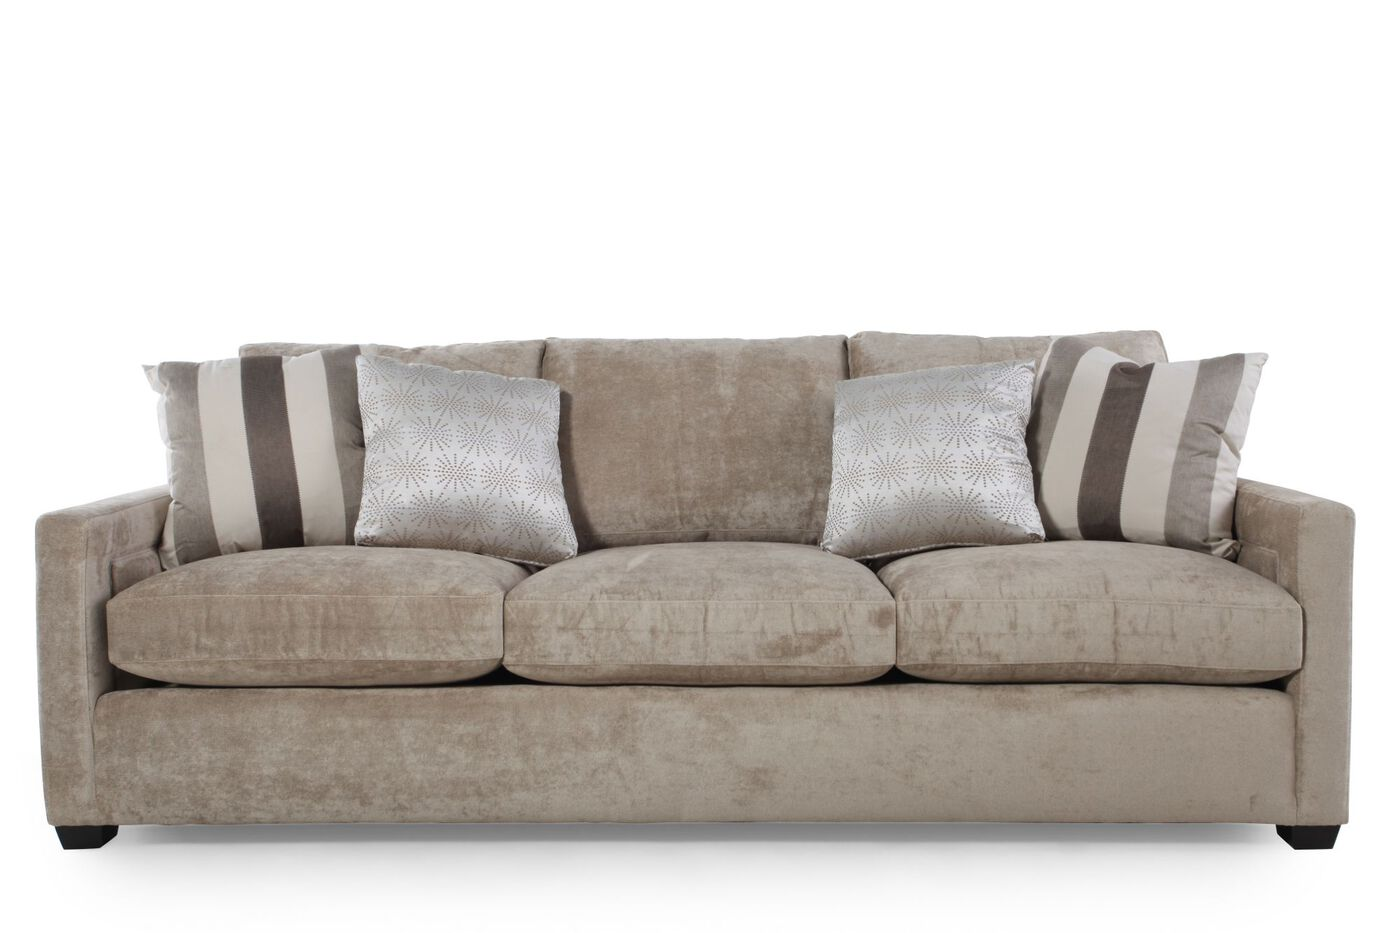 Bernhardt kelley sofa mathis brothers furniture for Mathis brothers living room furniture sectional sofas